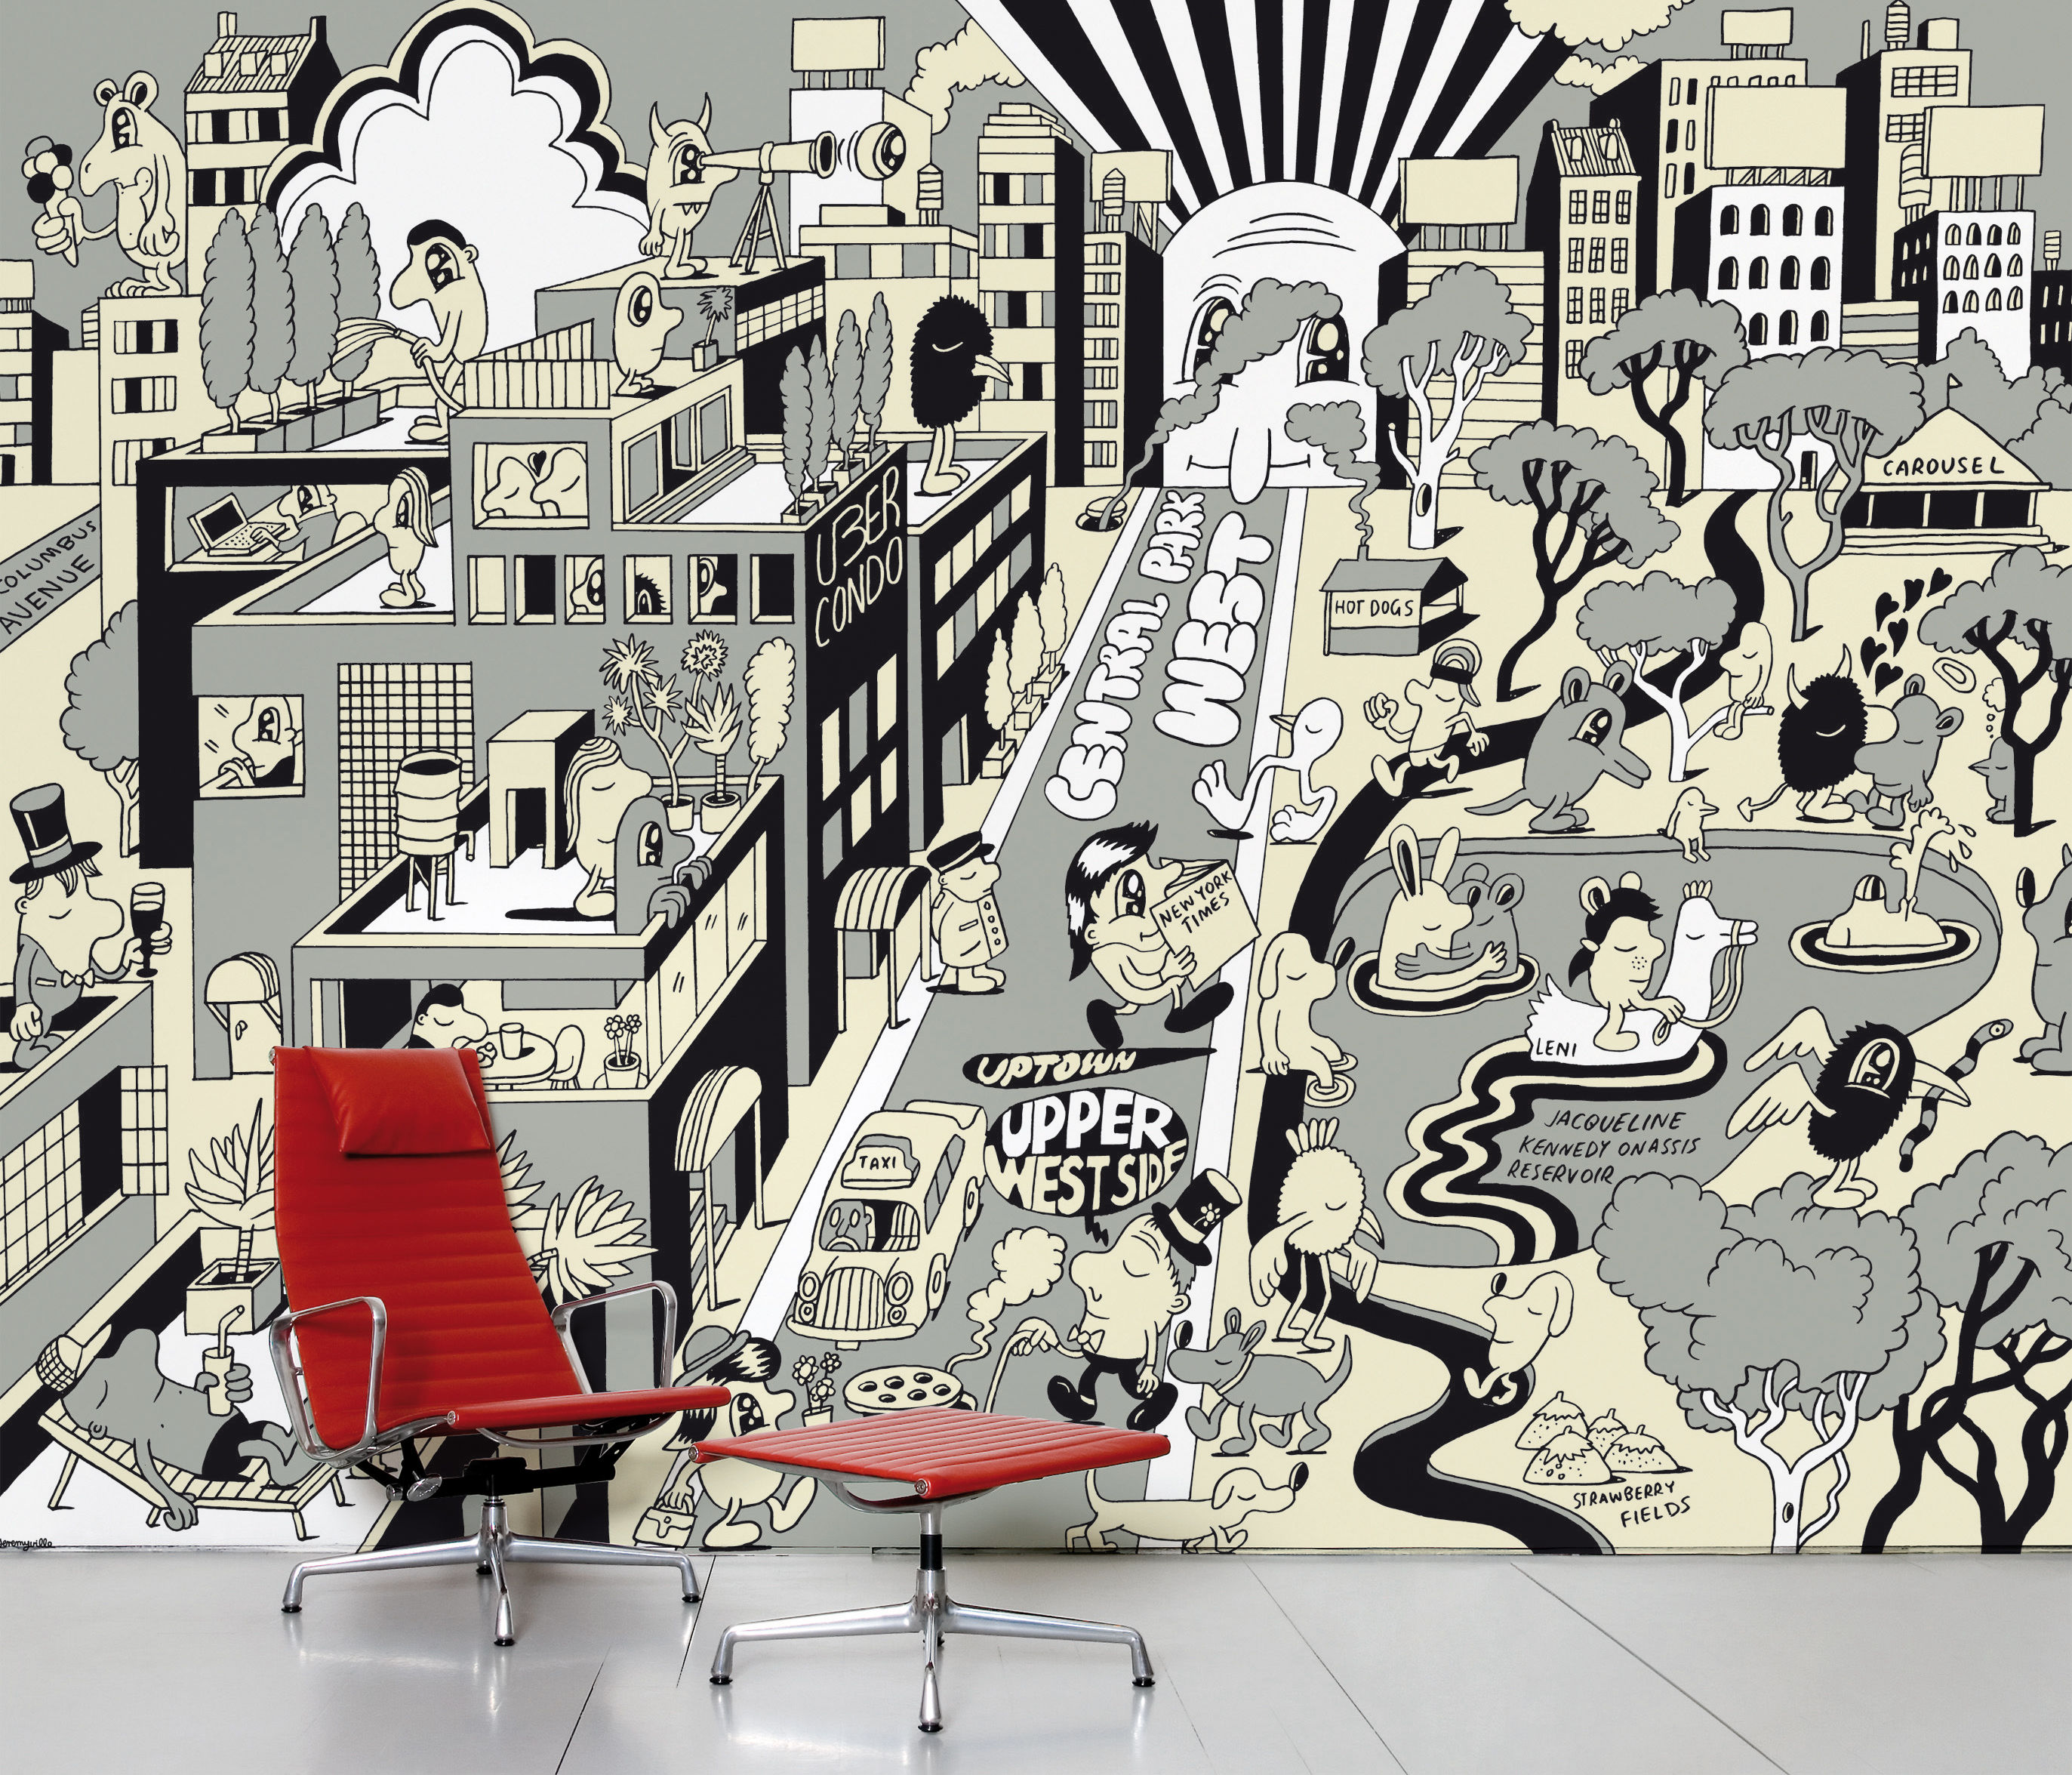 Decoration - Wallpaper & Wall Stickers - Upper West Side Panoramic Wallpaper - 8 panels by Domestic -  - Intisse paper